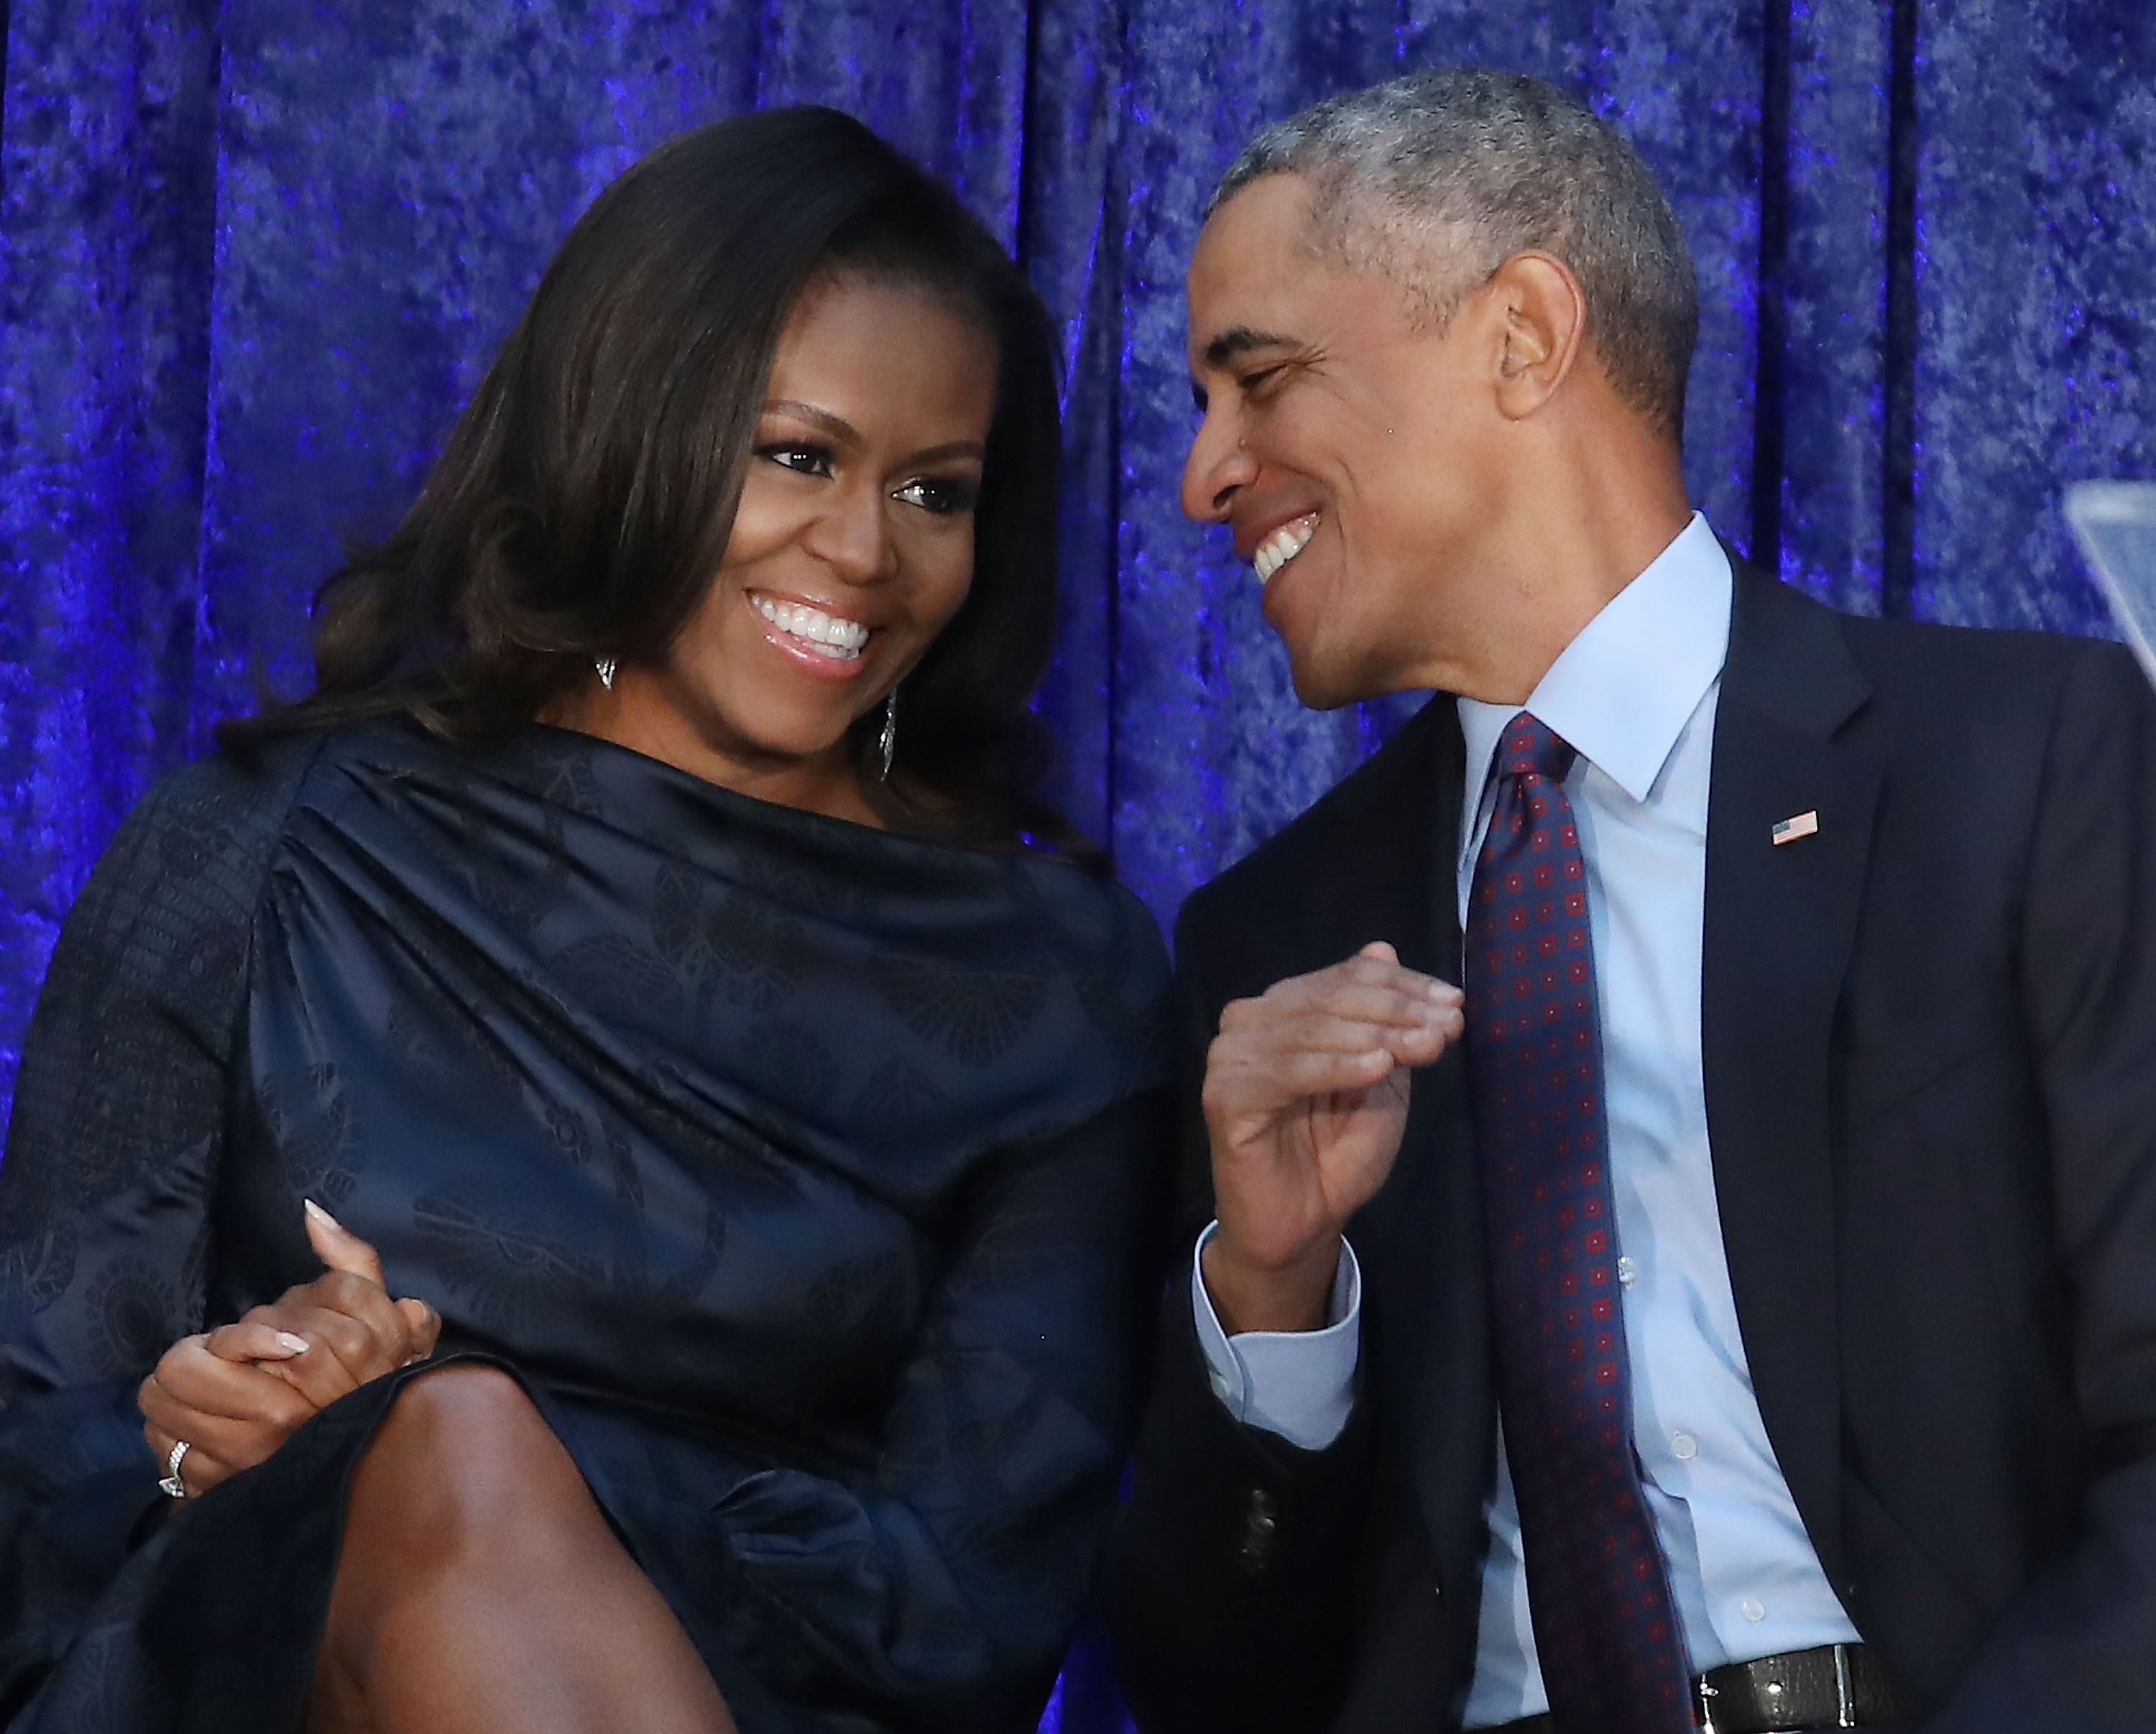 Former U.S. President Barack Obama and first lady Michelle Obama participate in the unveiling of their official portraits during a ceremony at the Smithsonian's National Portrait Gallery, on February 12, 2018 in Washington, DC. The portraits were commissioned by the Gallery, for Kehinde Wiley to create President Obama's portrait, and Amy Sherald that of Michelle Obama.